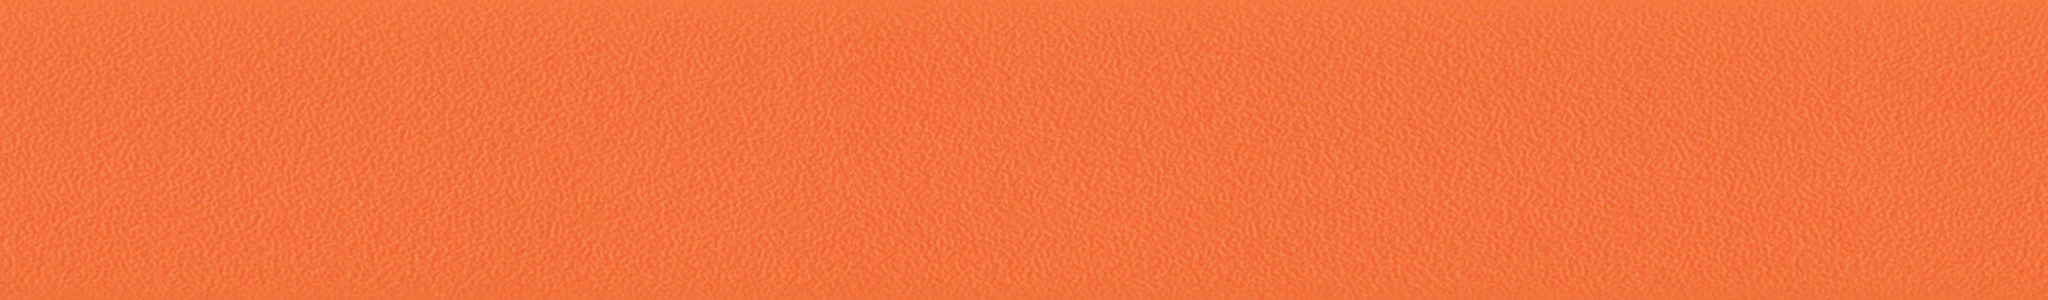 HU 147176 Chant ABS Orange Perle 101